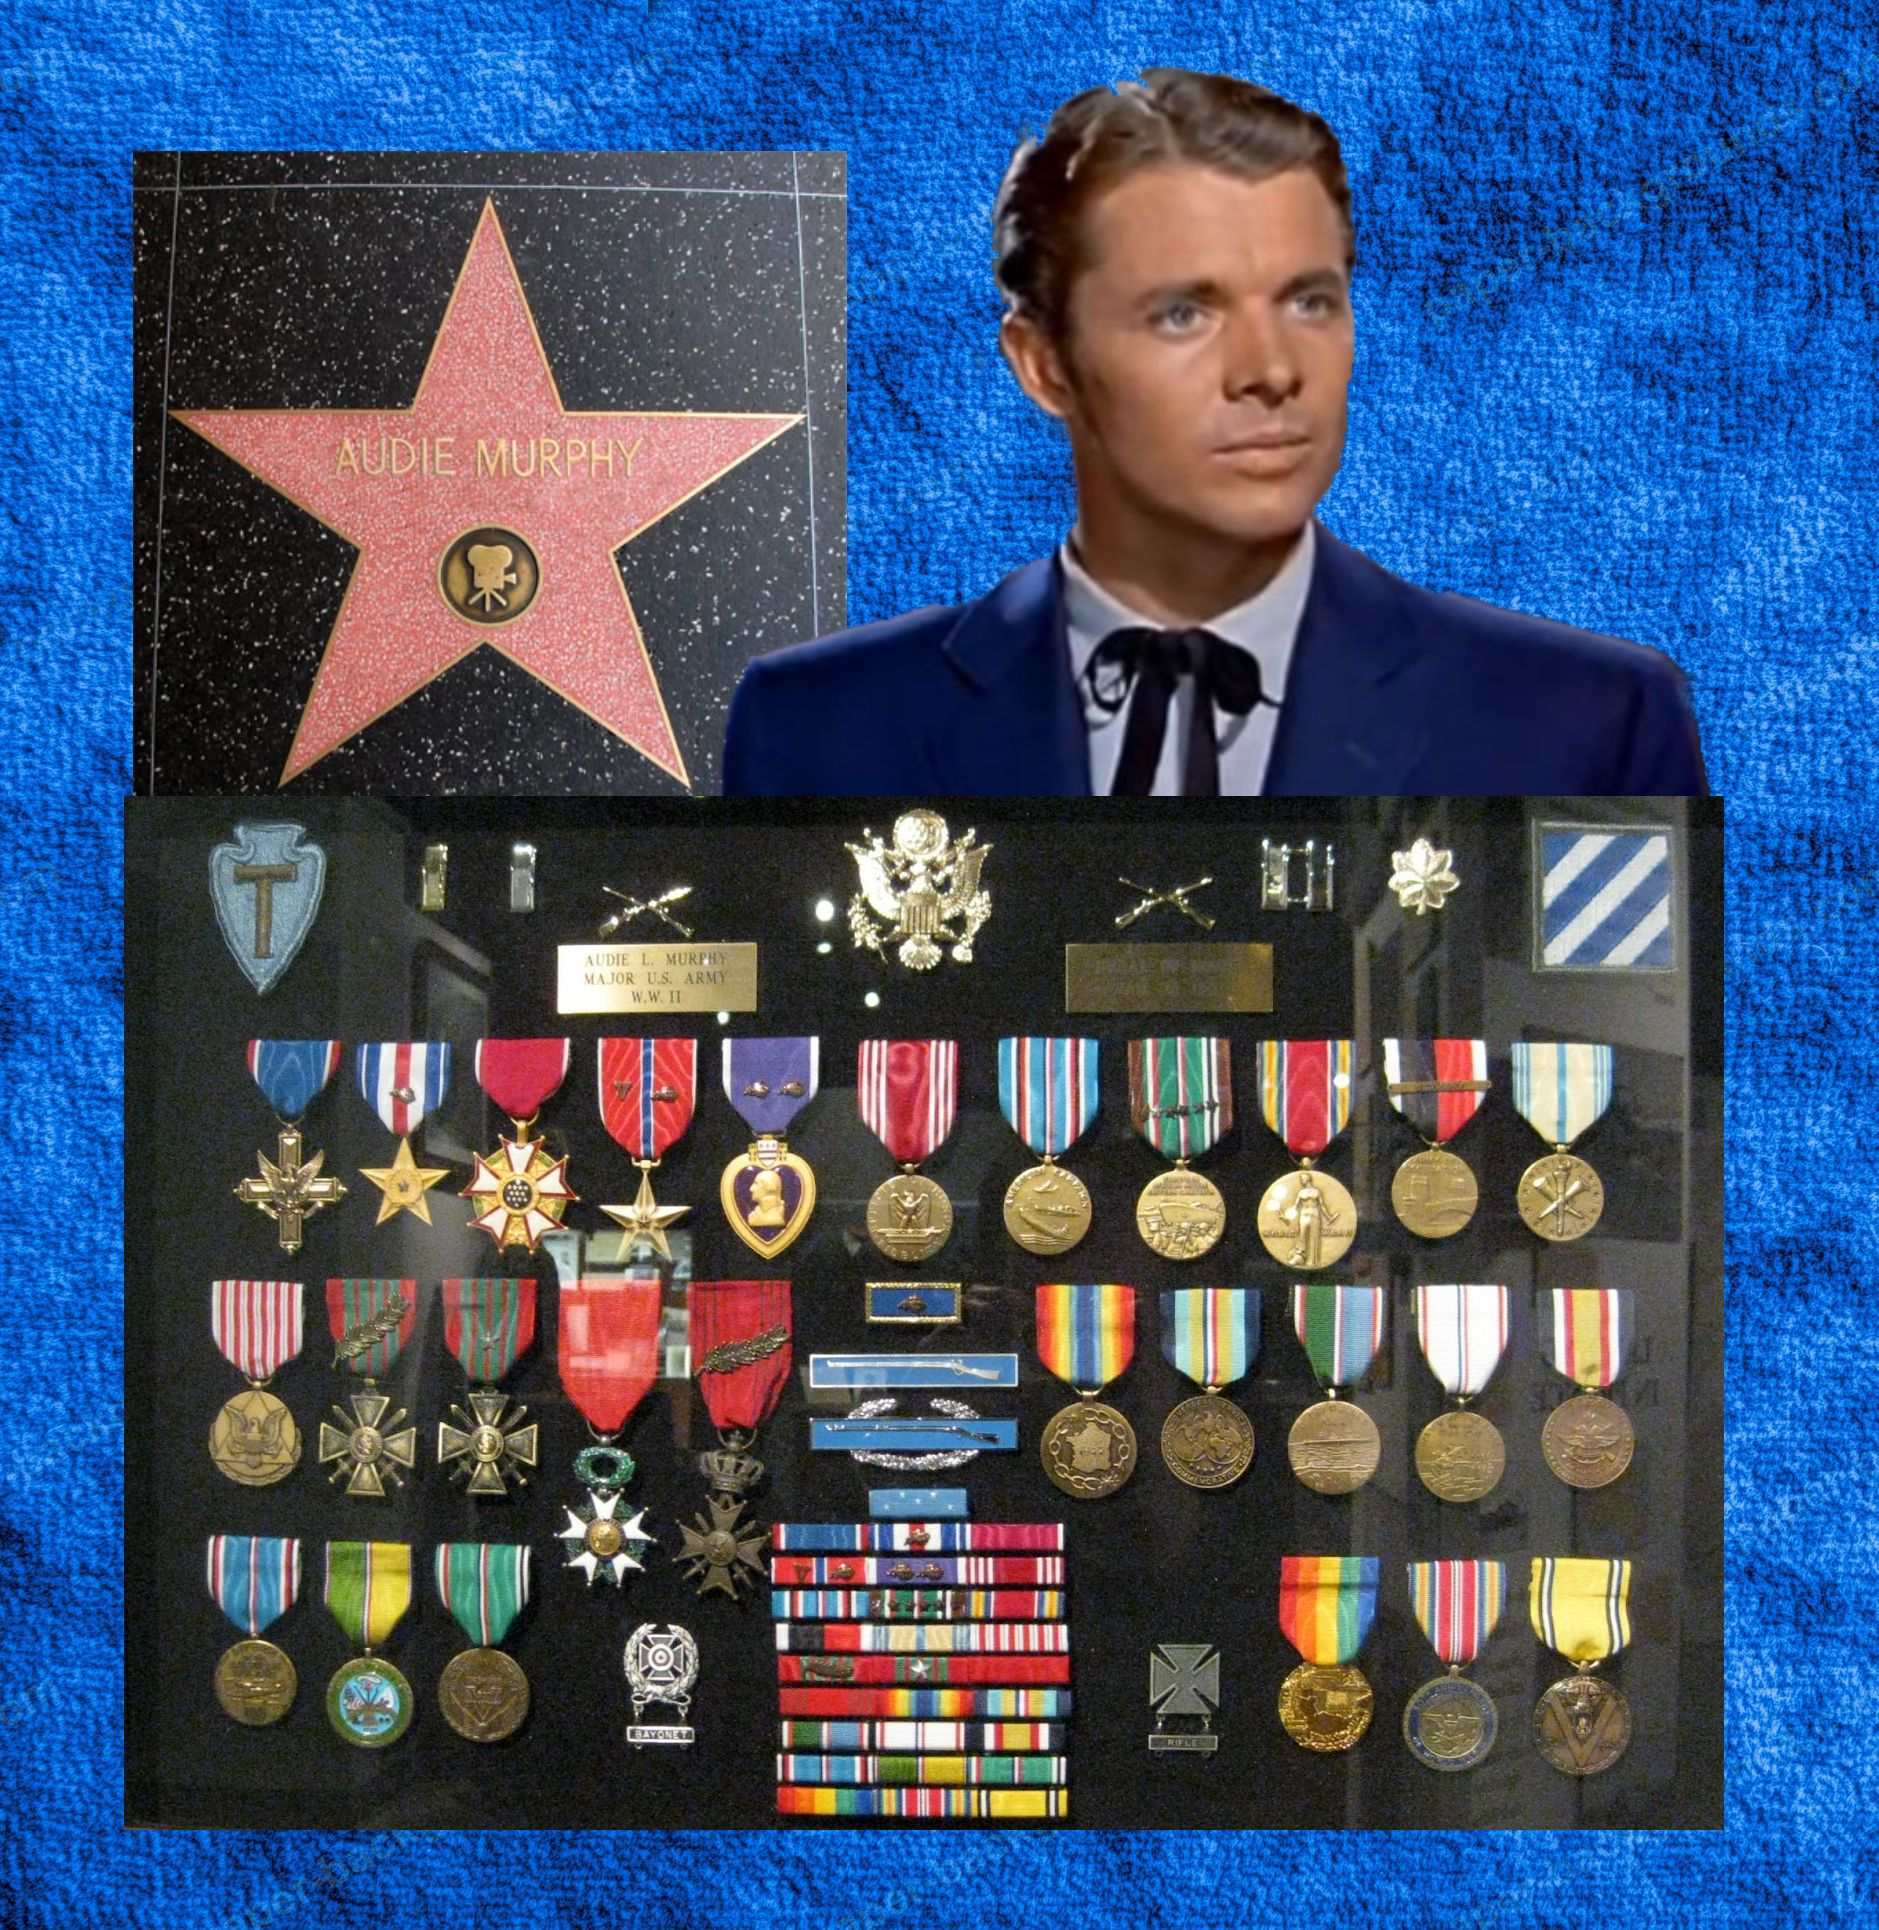 Audie Murphy Most Decorated Veteran Of WWII